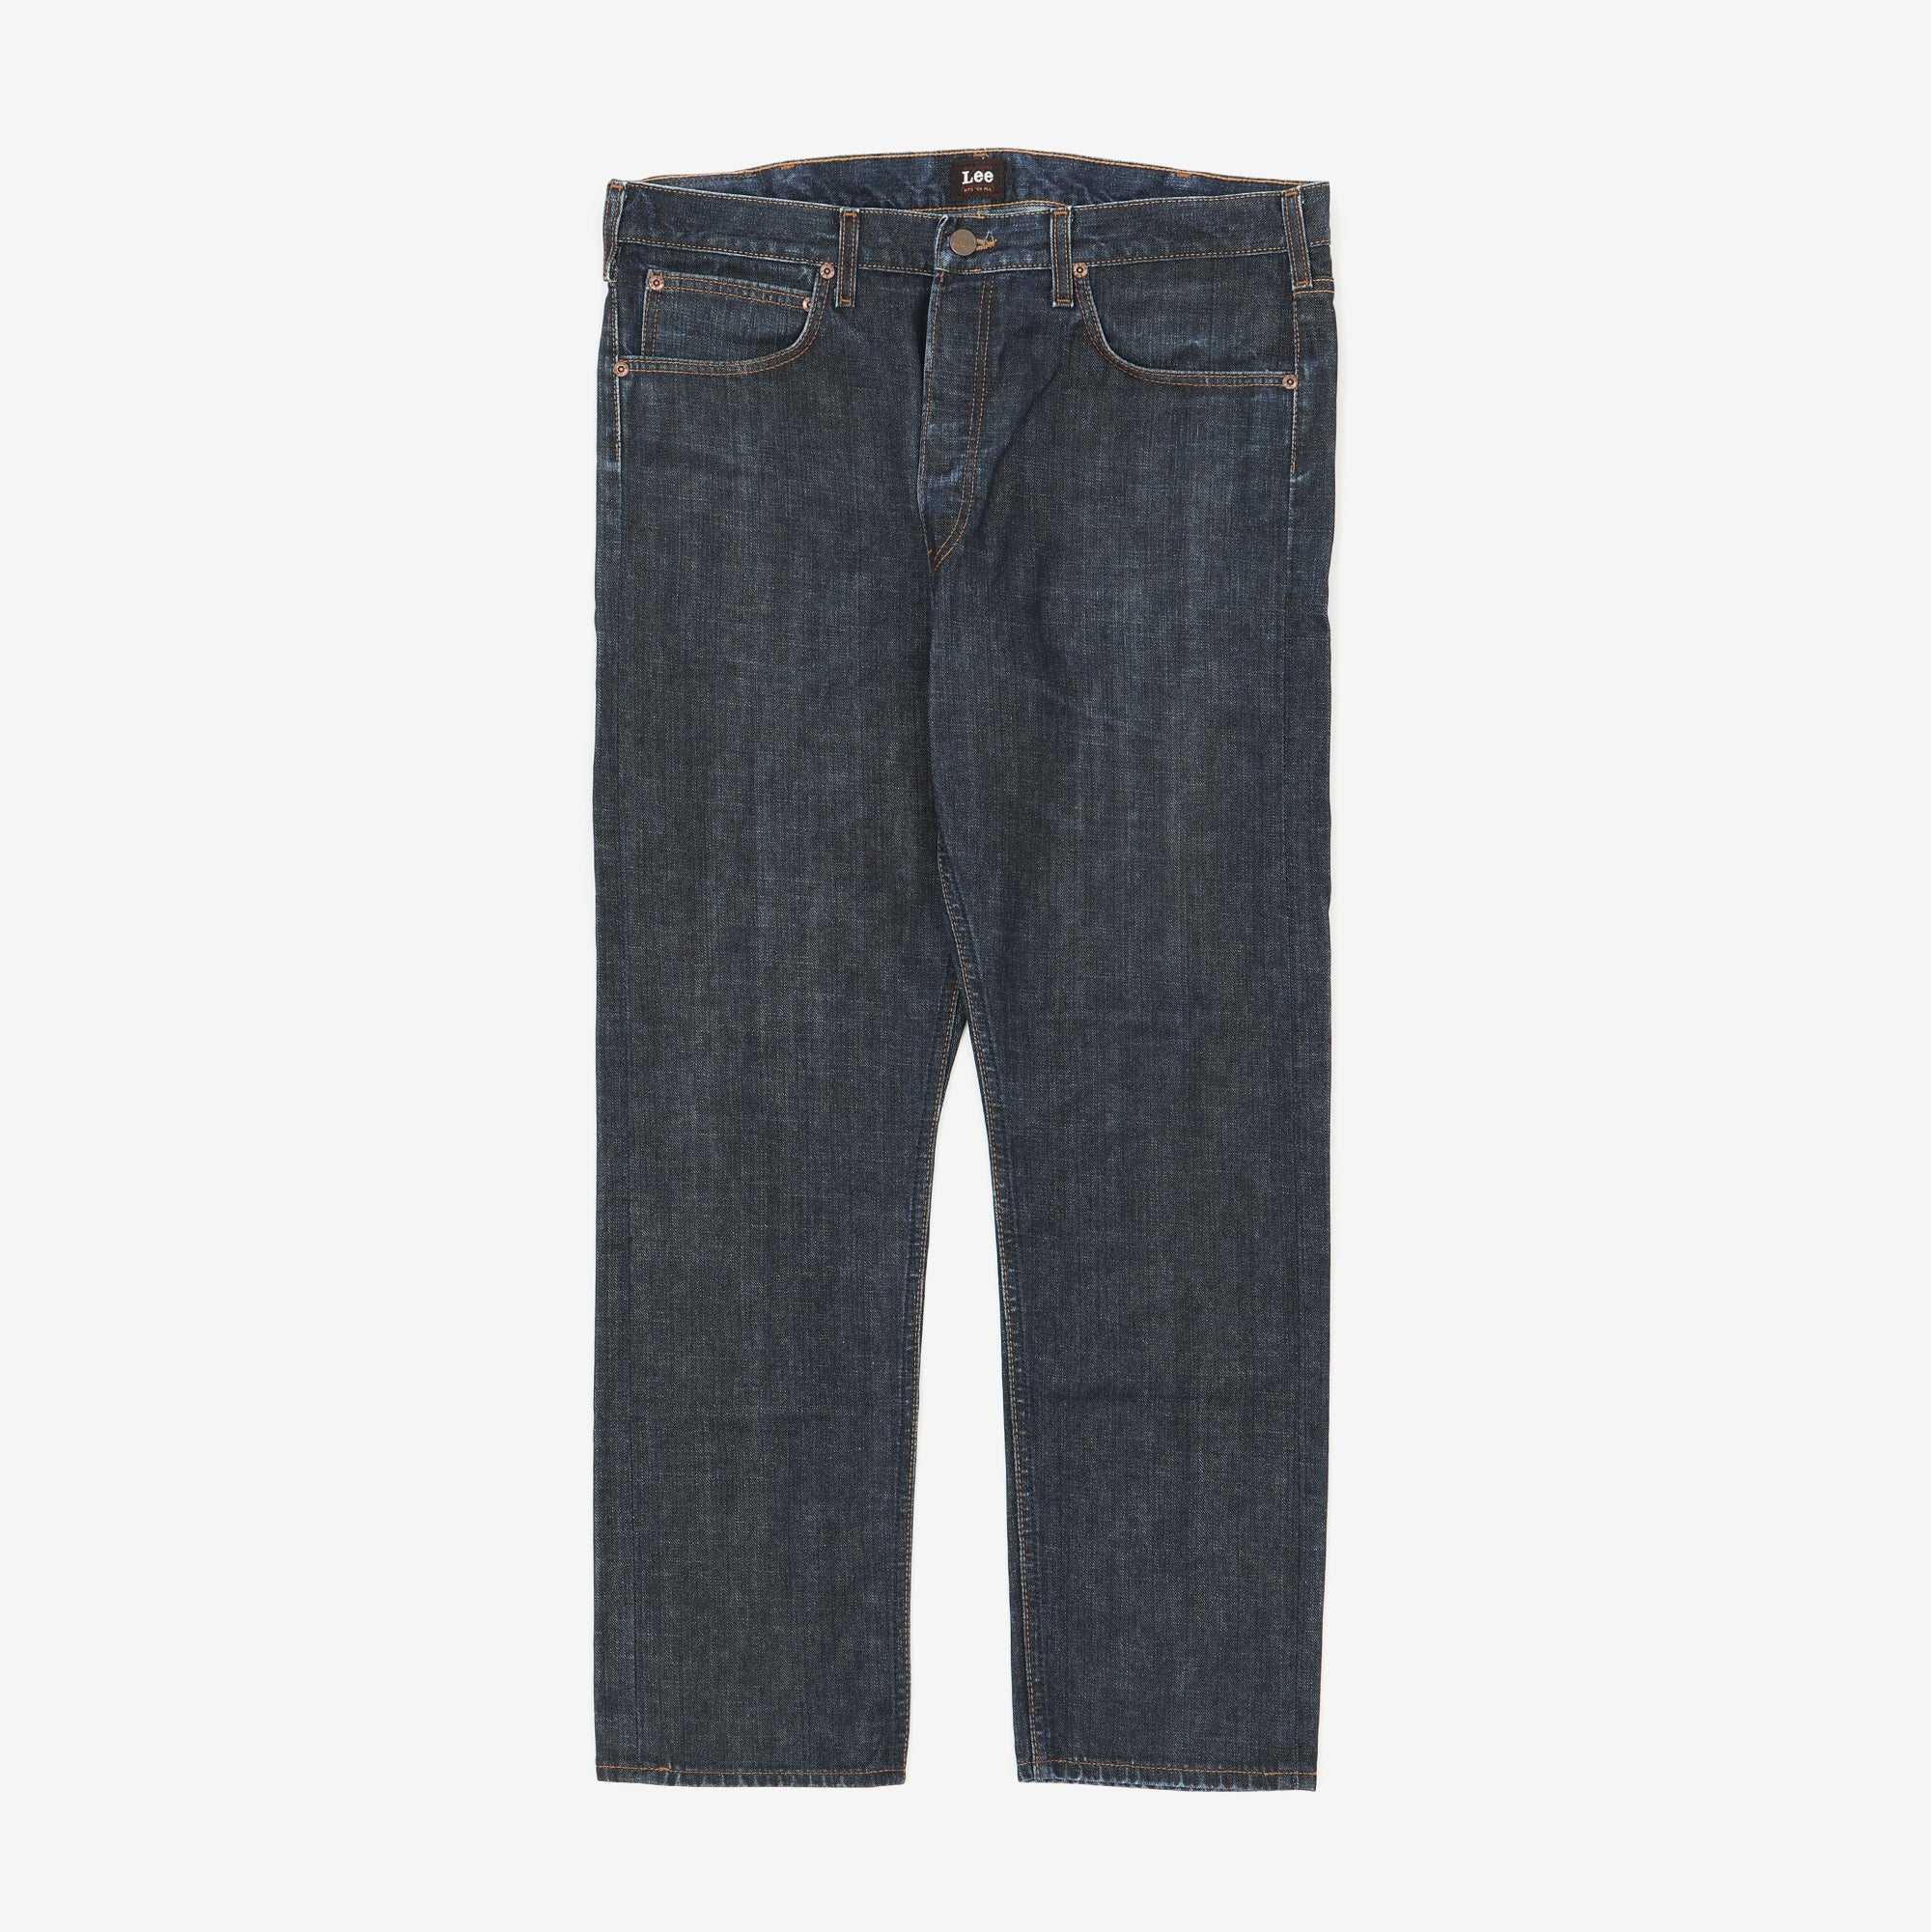 101 Straight Leg Denim